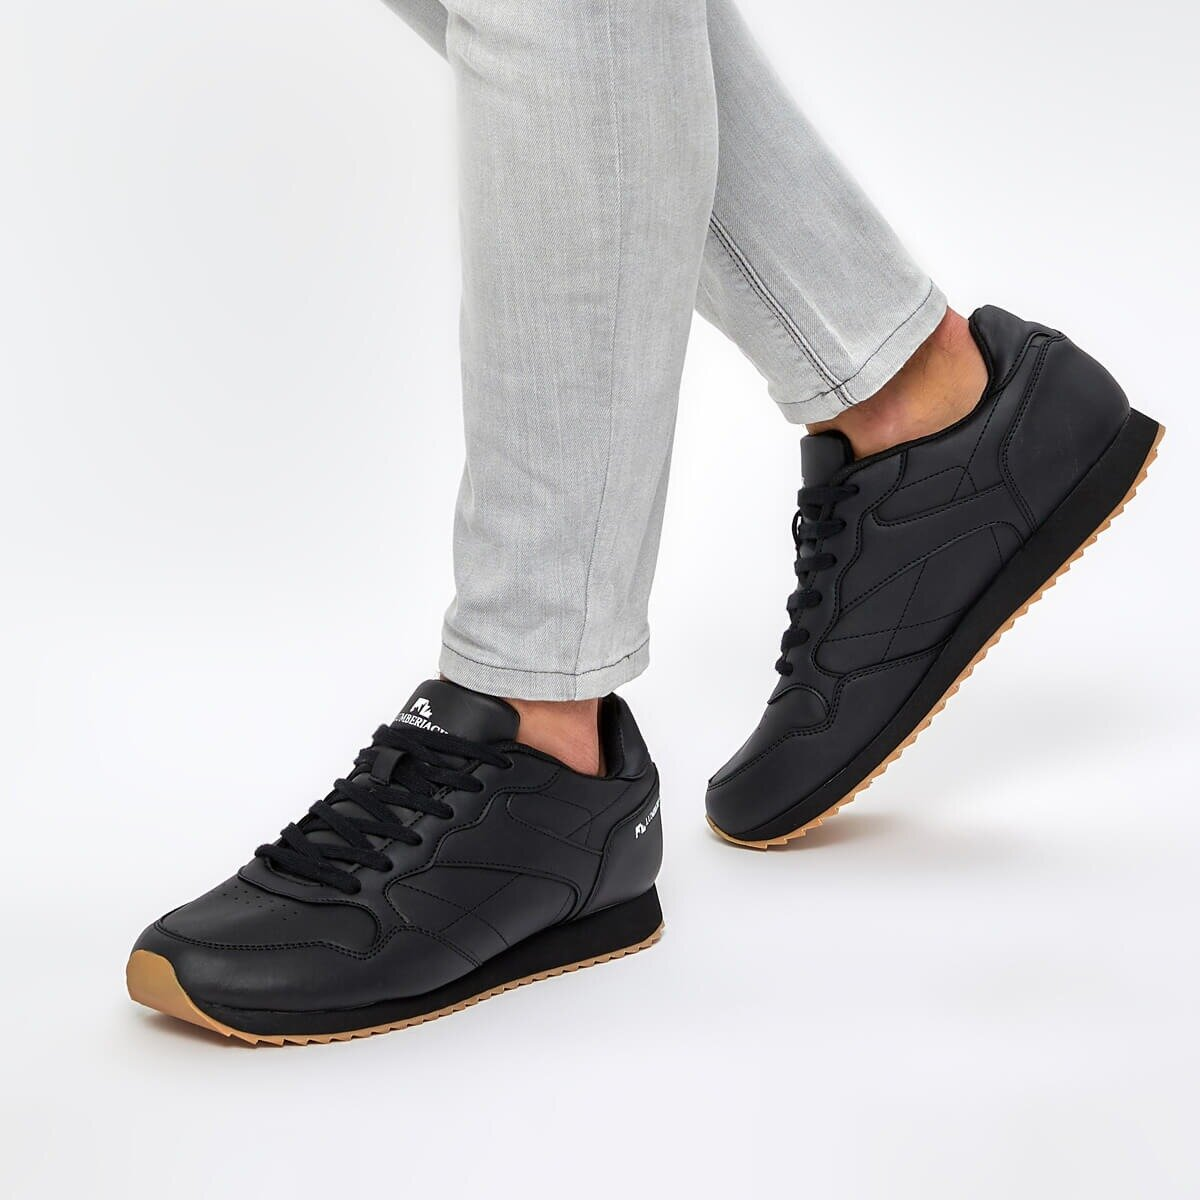 FLO RAFAEL 9PR Black Men 'S Sneaker Shoes LUMBERJACK